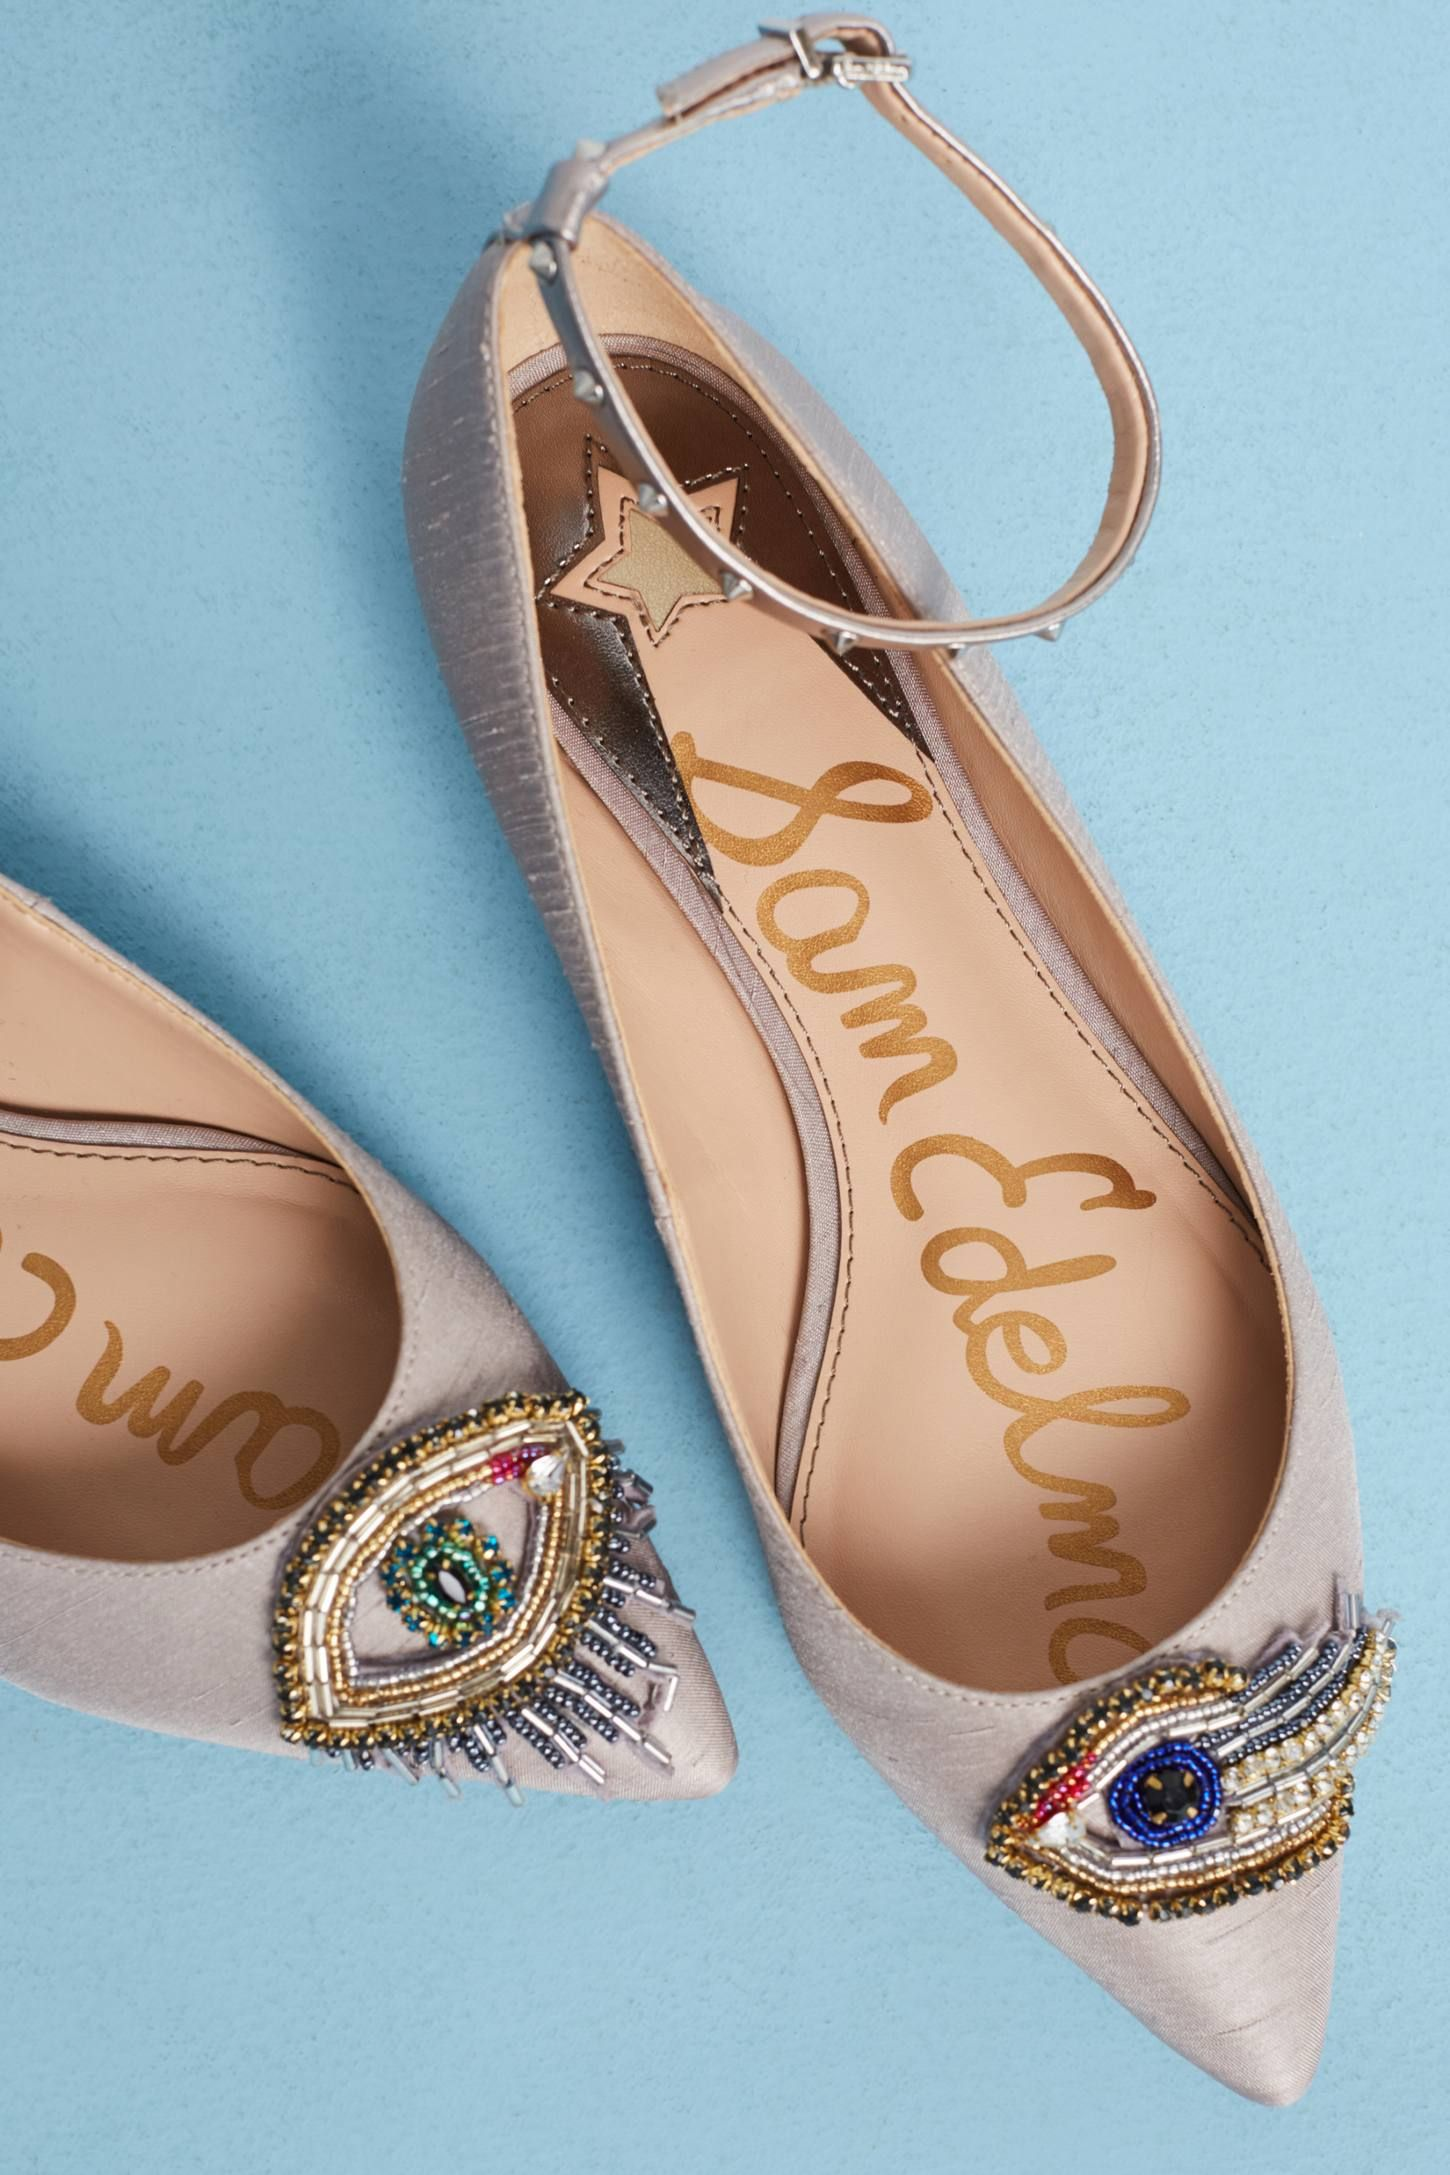 fd2508ed95f4f0 Shop the Sam Edelman Rexley Flats and more Anthropologie at Anthropologie  today. Read customer reviews